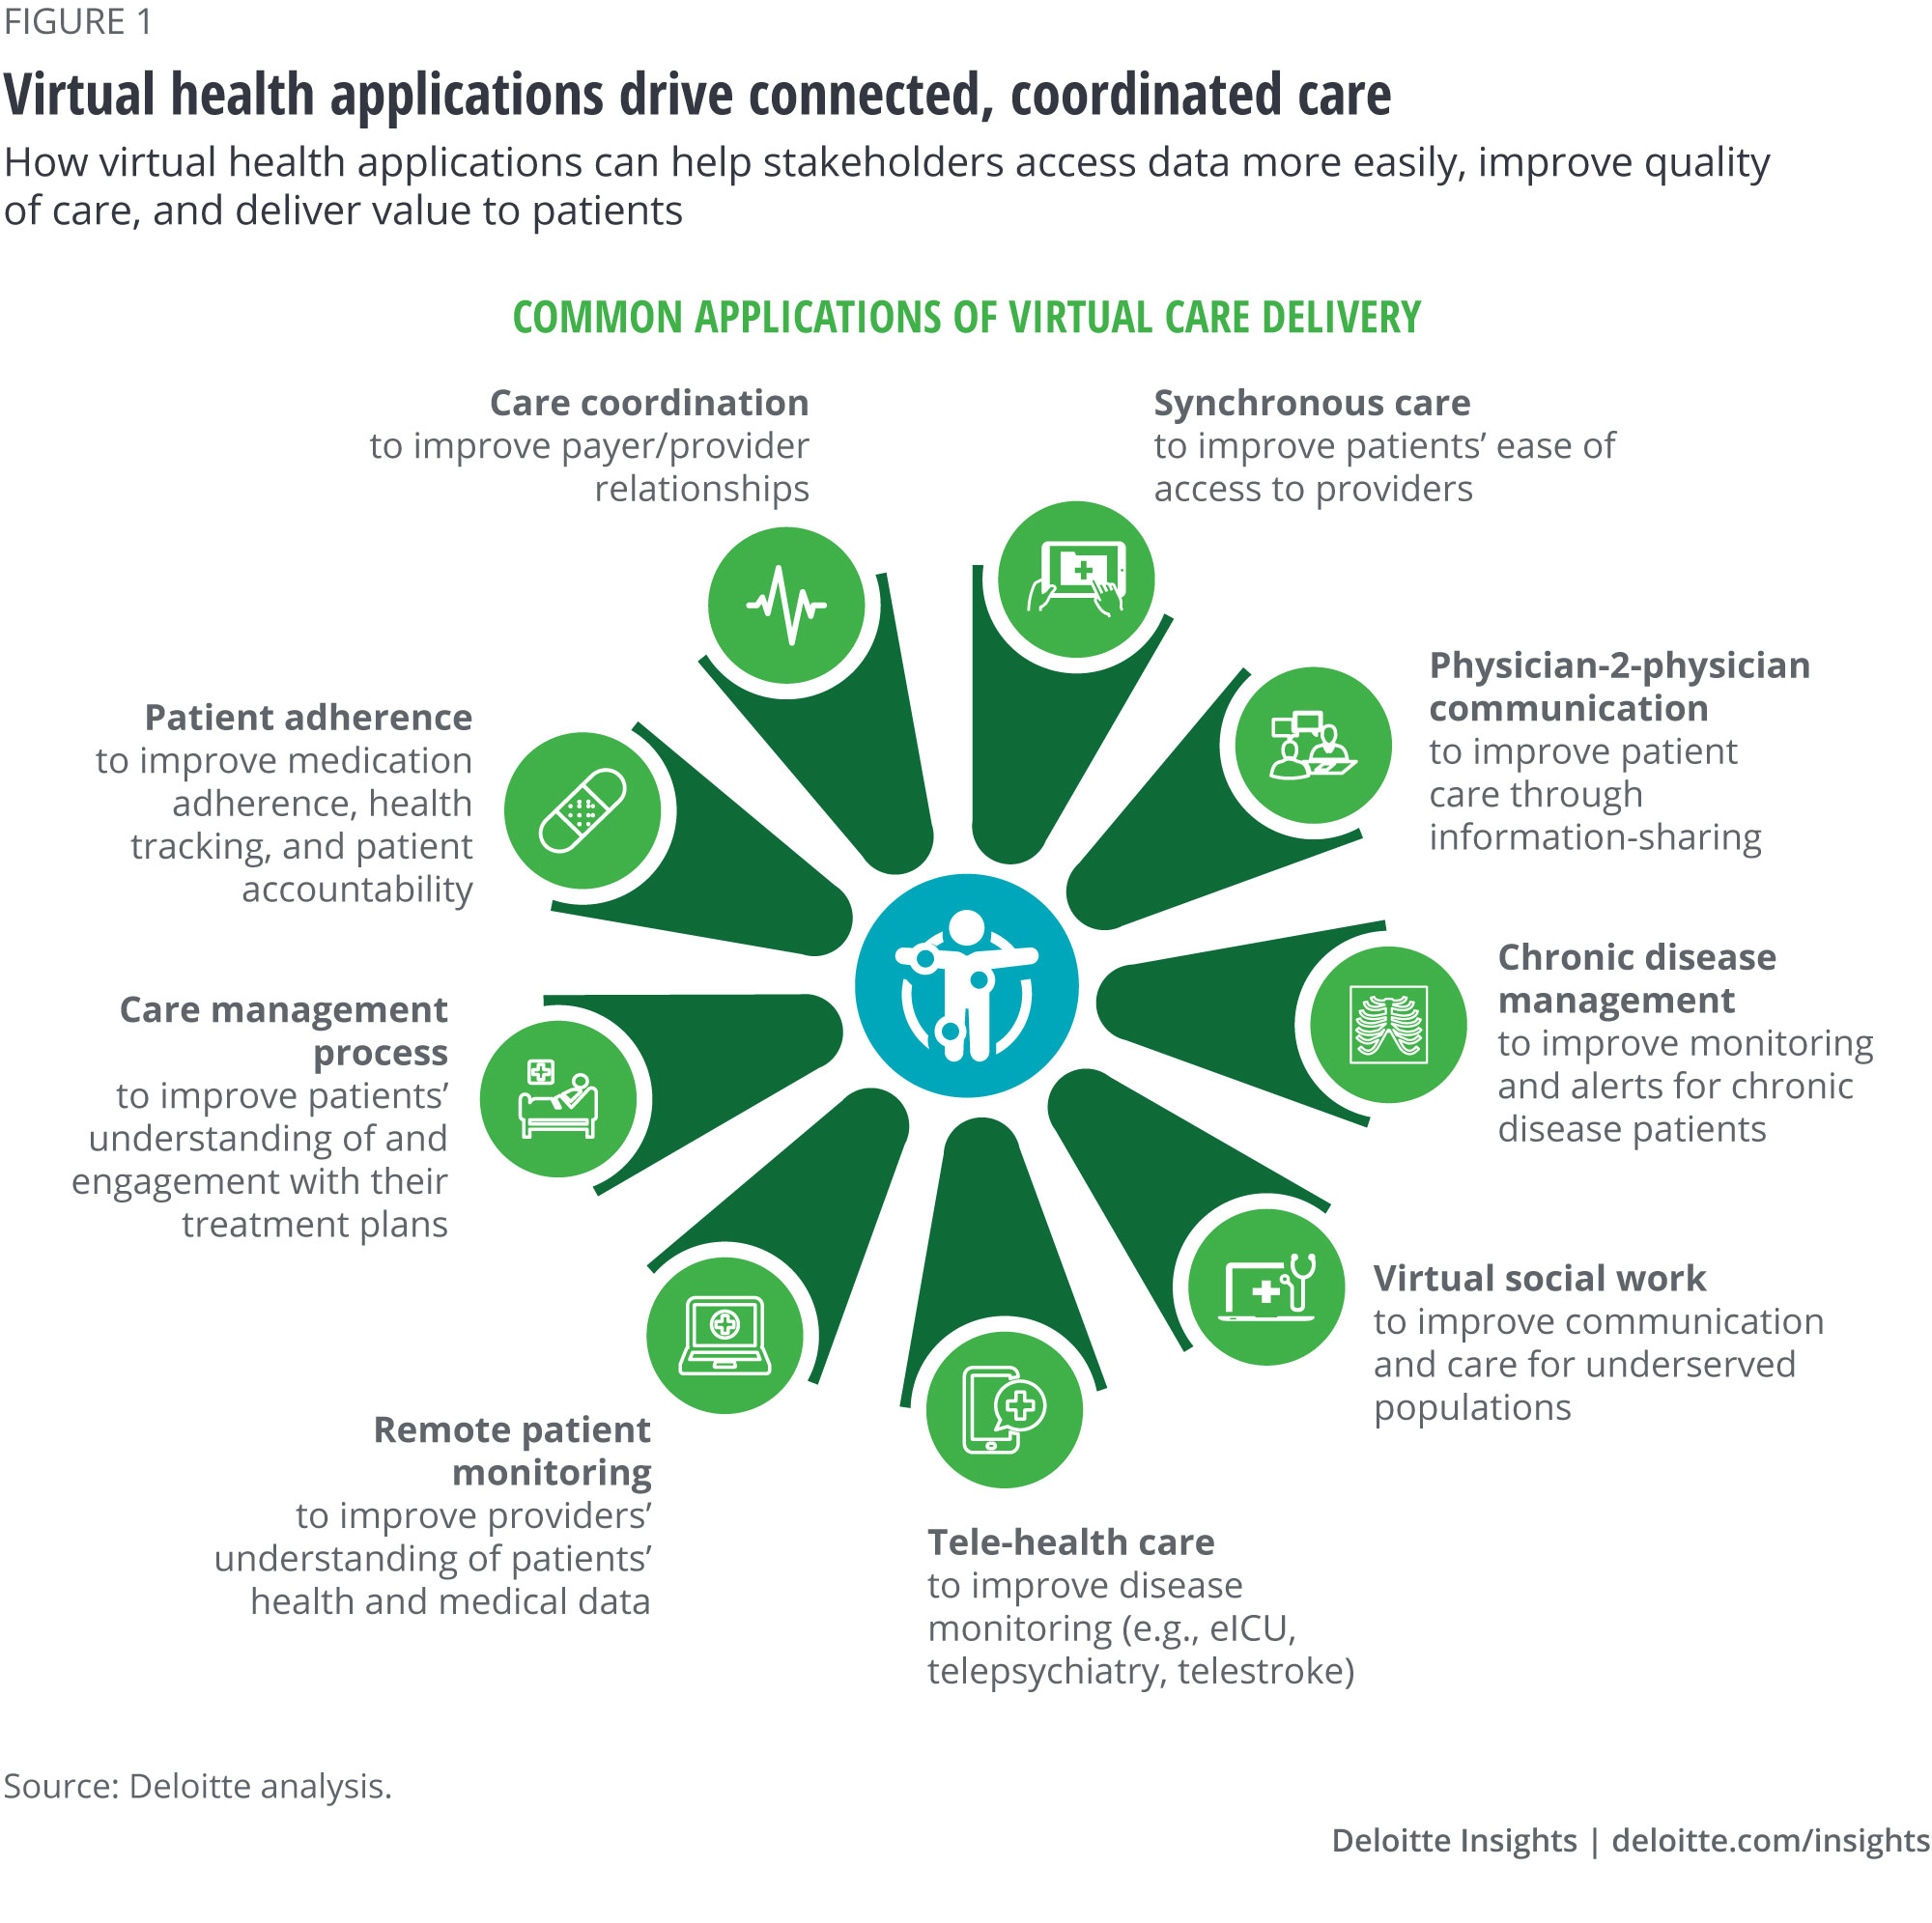 Telemedicine In Rural Areas Benefits Of Virtual Health Deloitte Insights